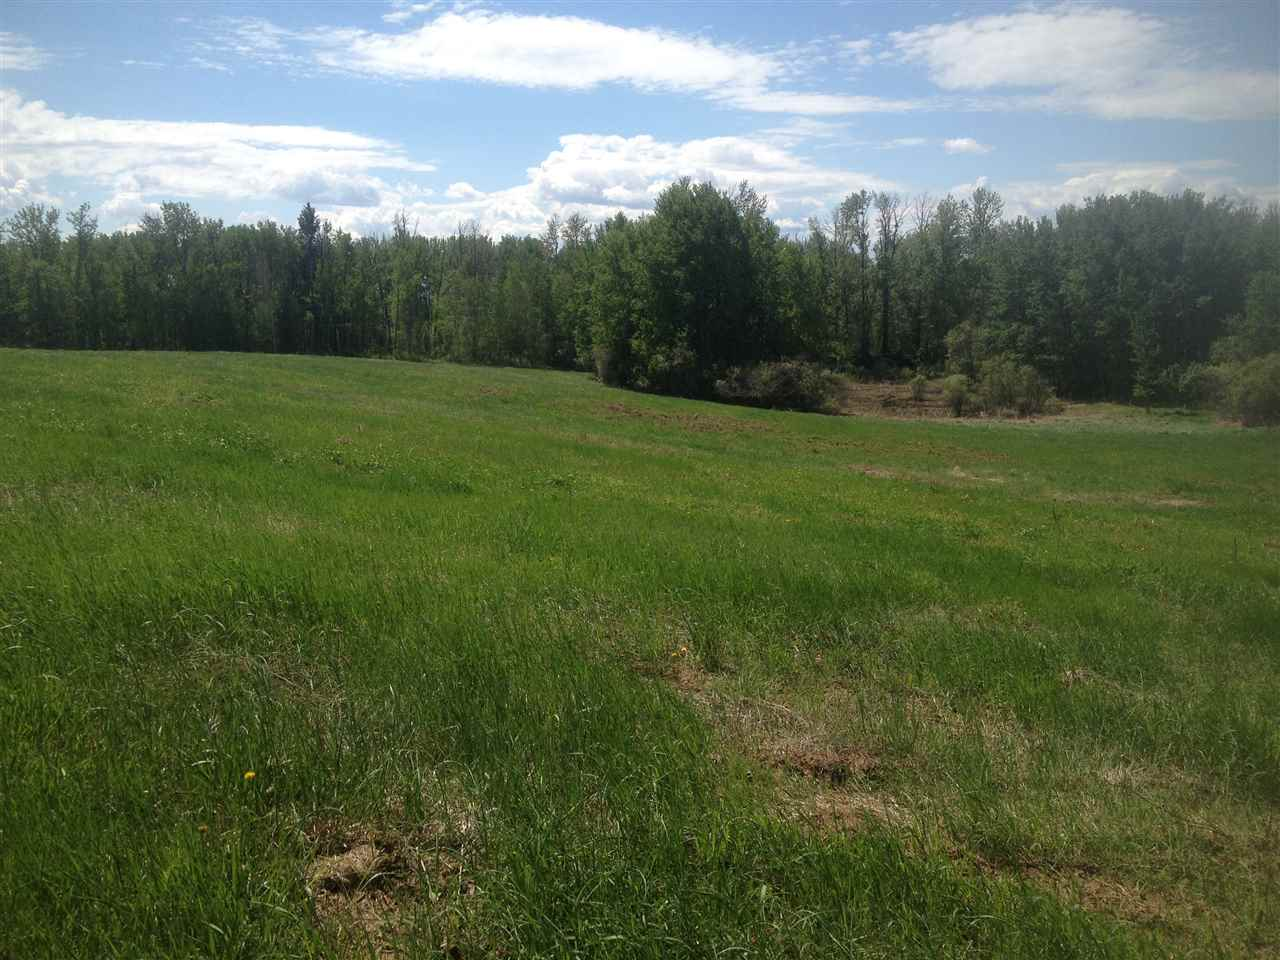 Photo 12: 52502 Range Road 22A: Rural Parkland County Rural Land/Vacant Lot for sale : MLS® # E4069524